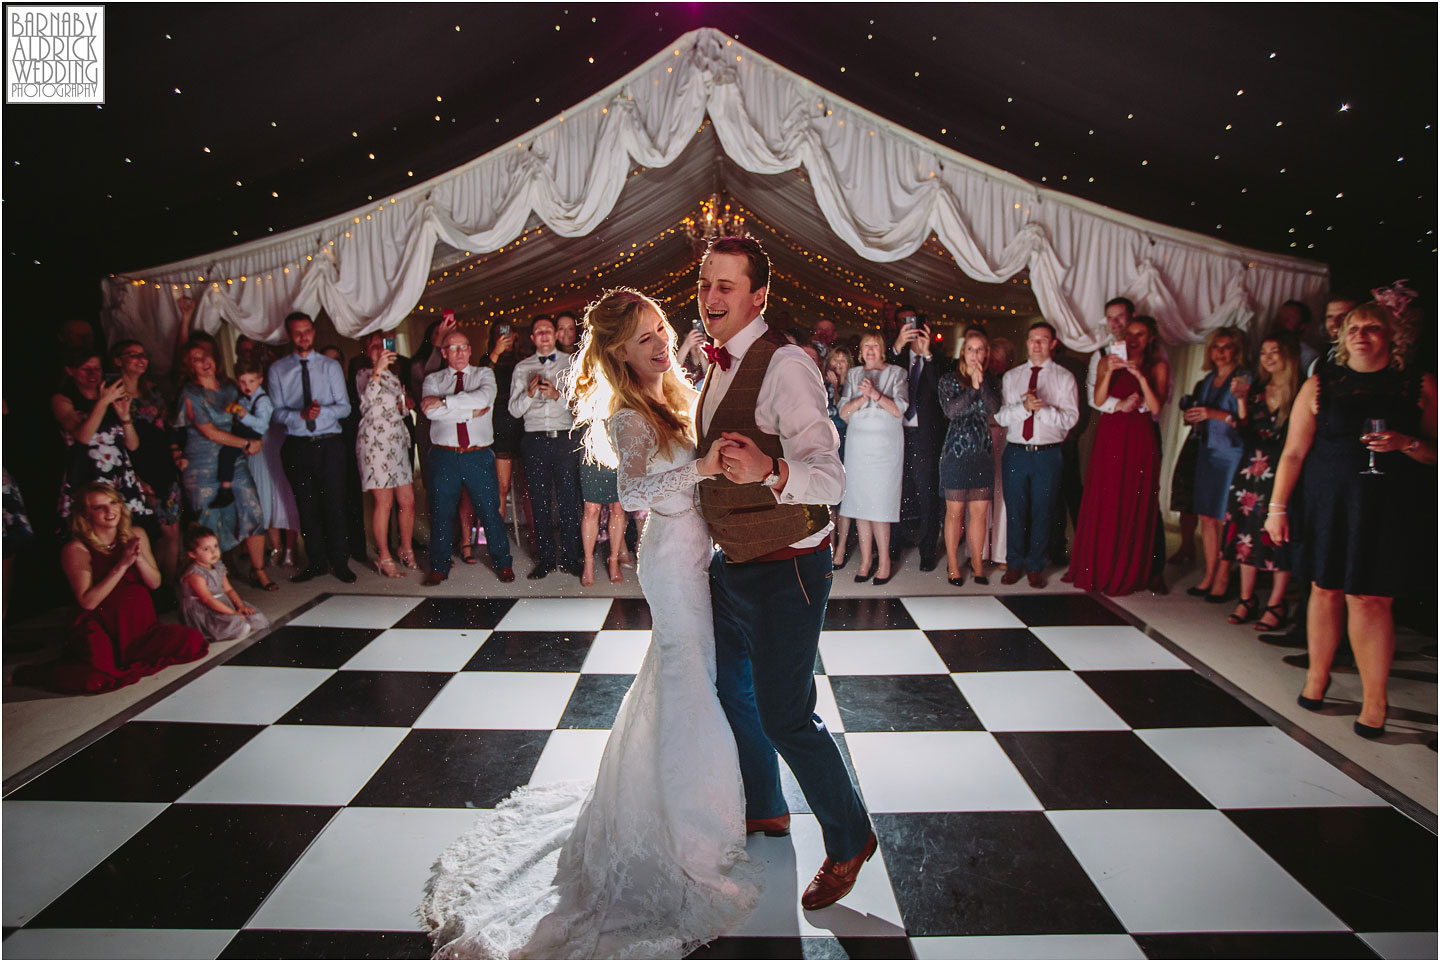 First Dance Photos at Priory Cottages Wetherby, Priory Cottages Barn Wedding Venue Photos, Yorkshire Barn Marquee Photos